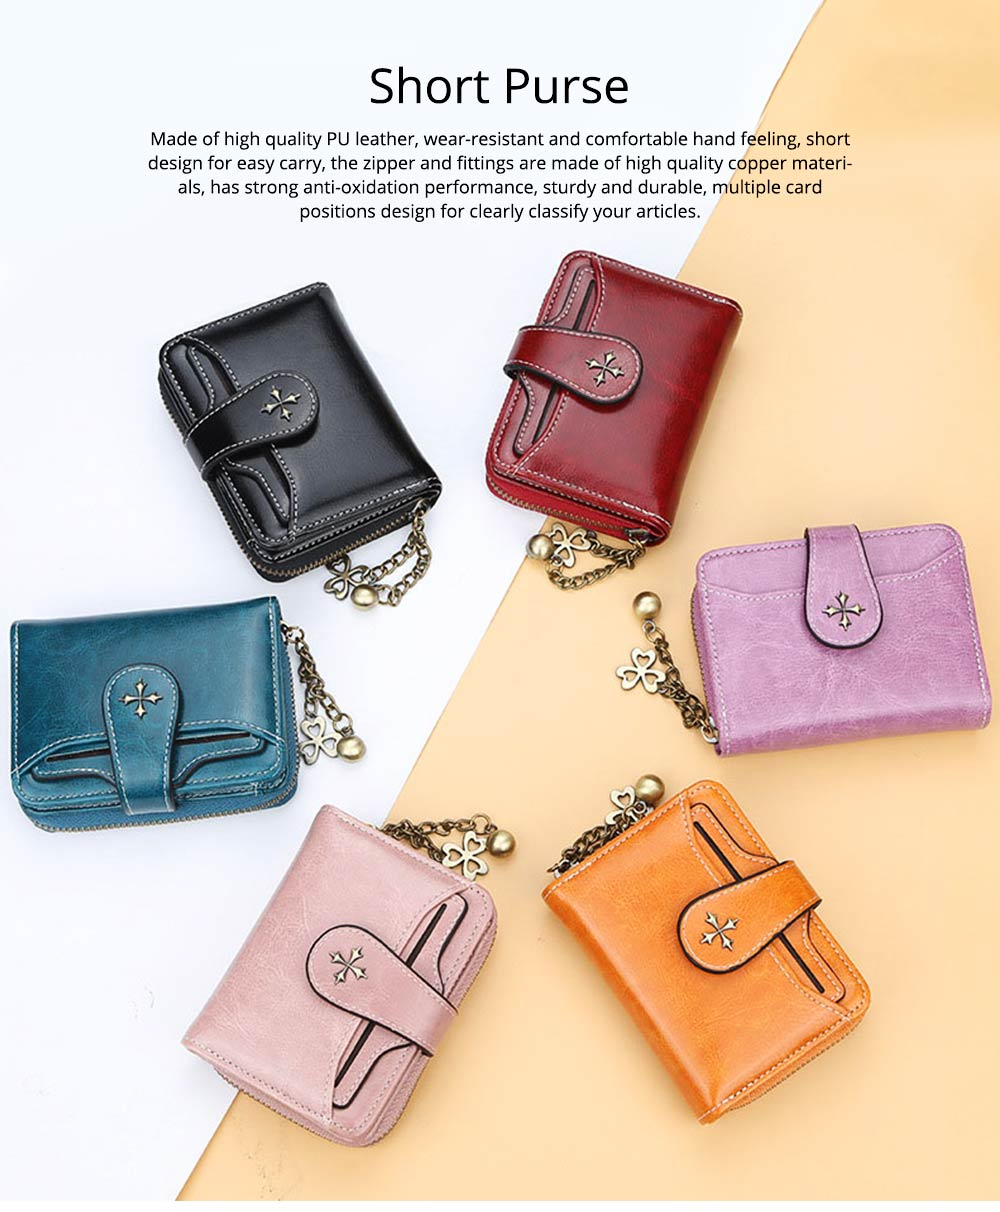 Baellery Short Purse for Women, PU Leather All-match Fashion Coin Purse Tassel Zipper Handbag Wallet 2019 New 0